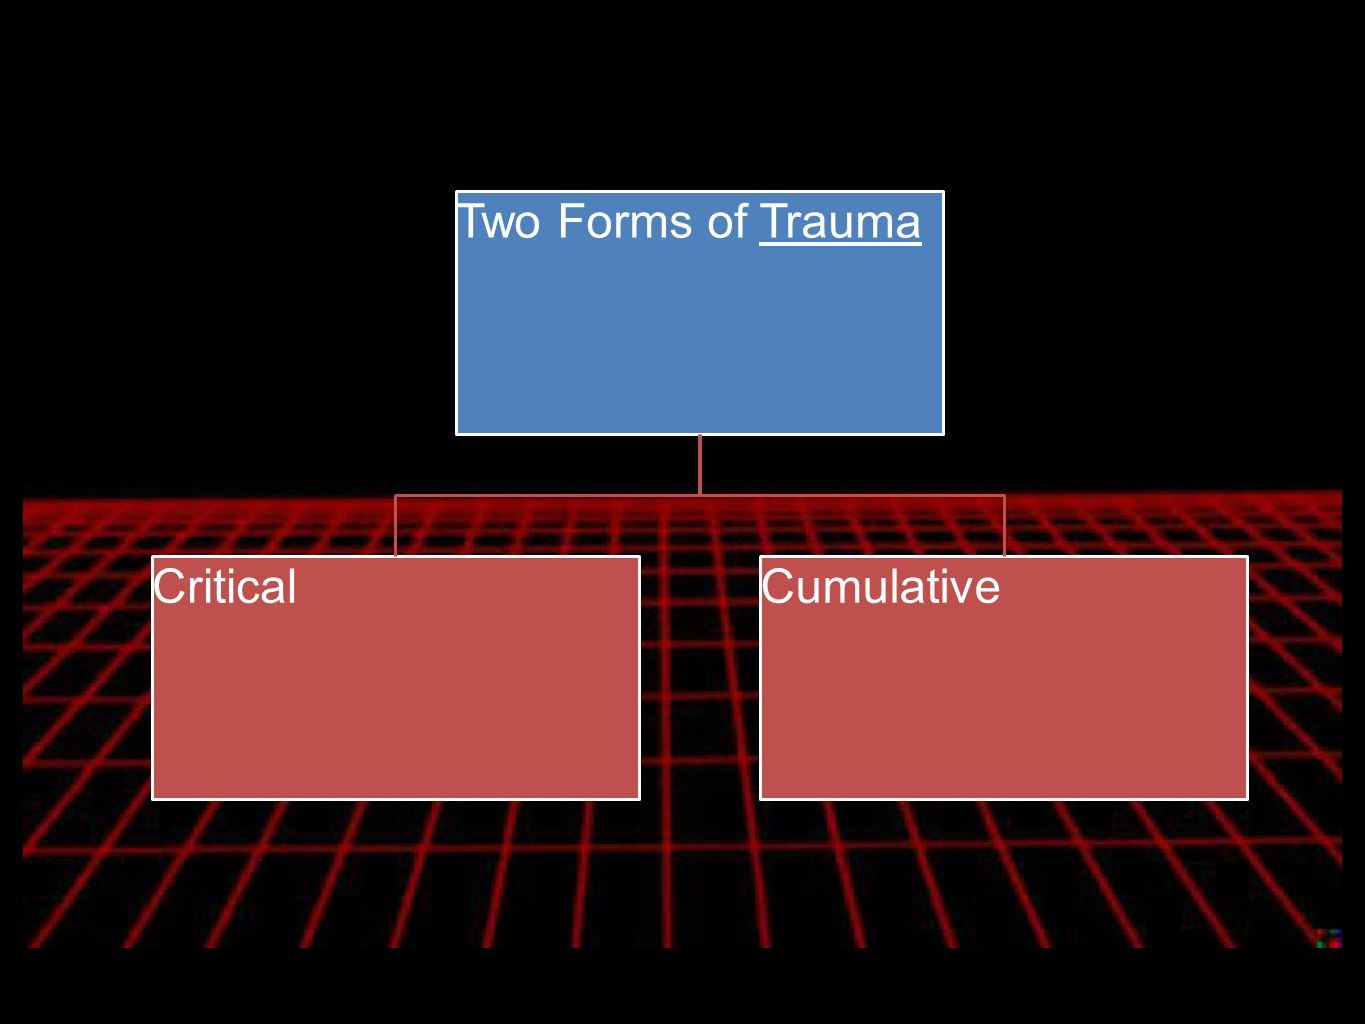 Two Forms of Trauma CriticalCumulative